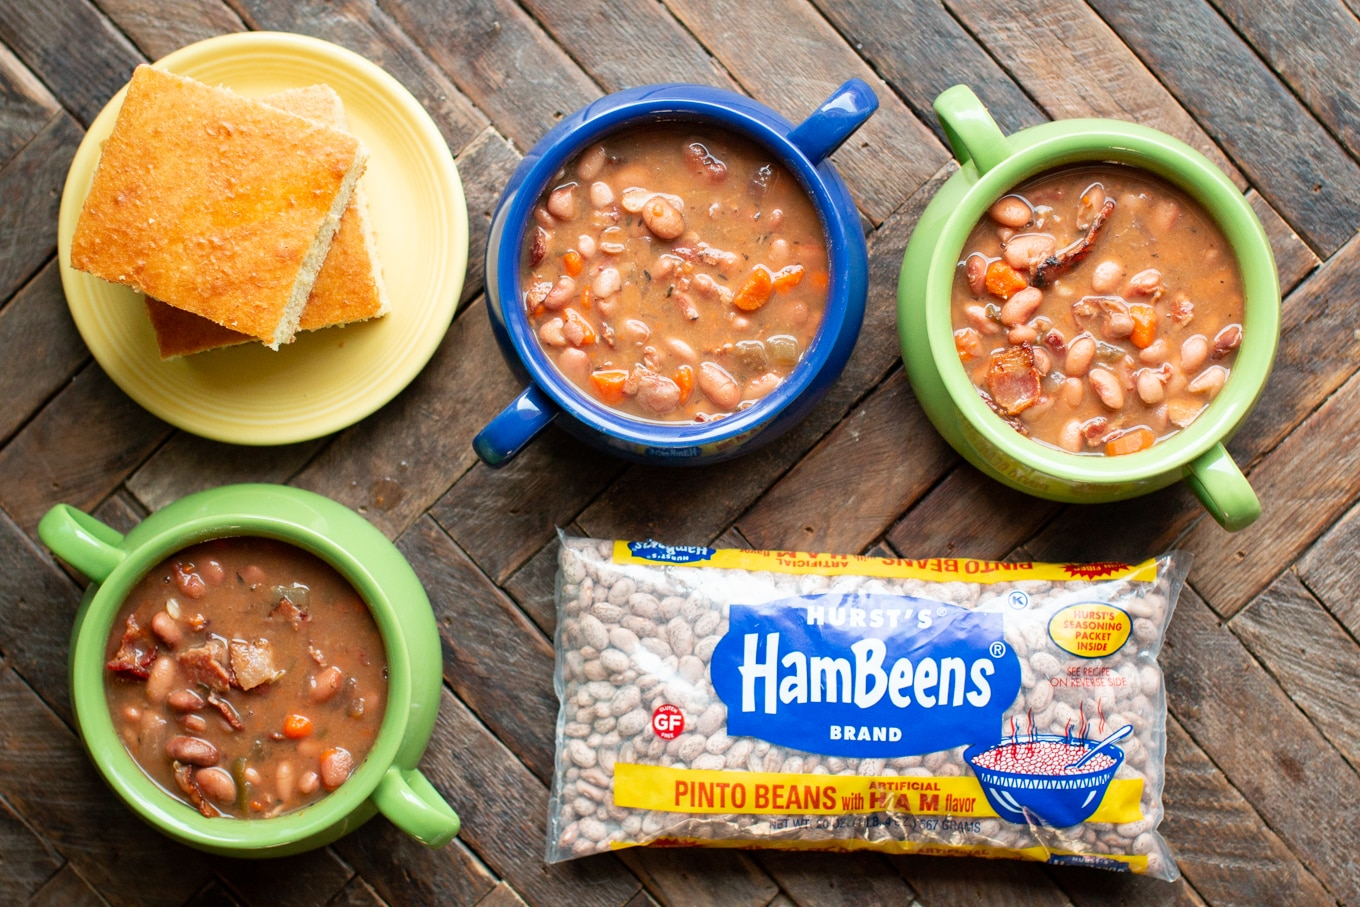 3 bowls of pinto beans with cornbread and bag of HamBeens pinto beans with ham flavor.